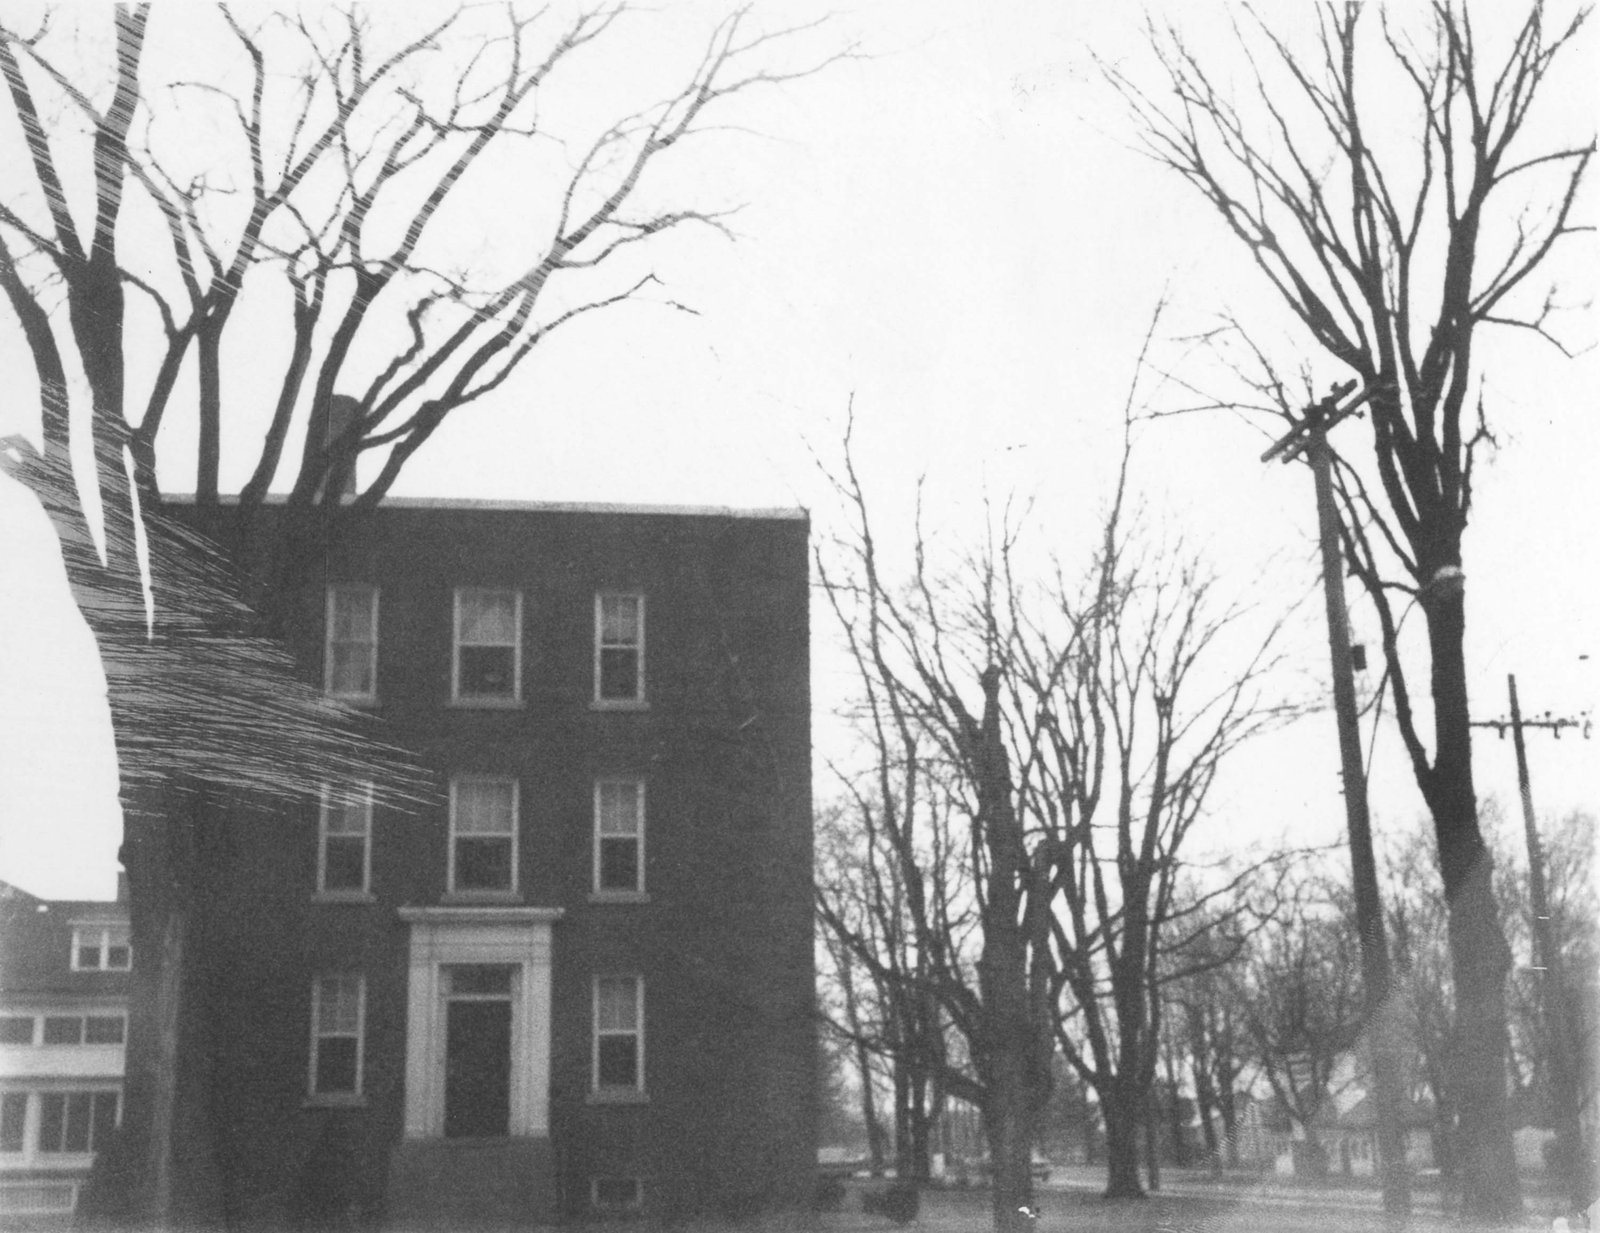 McLaughlin Hall, Nursing residence, c. 1960